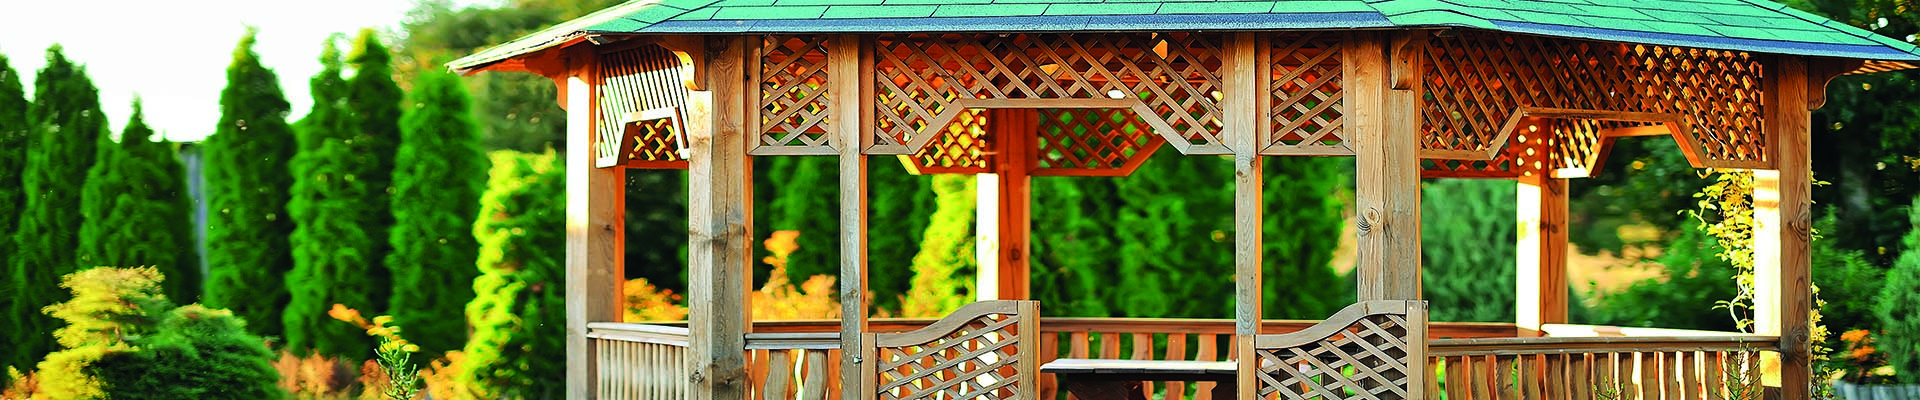 green oak structure wooden gazebo in garden